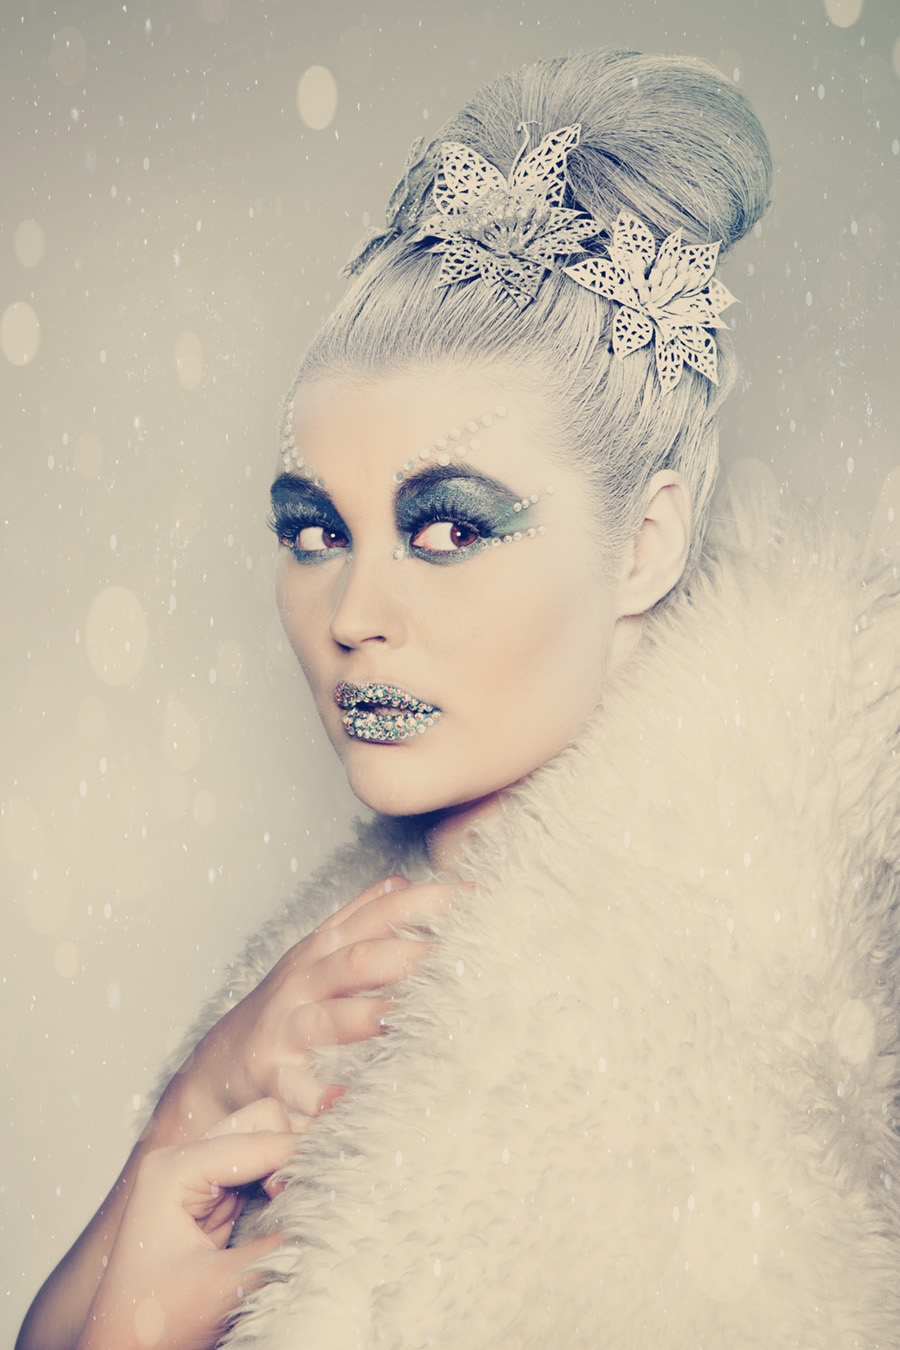 Snow Queen / Photography by Si Drew, Taken at Loud and Flashy / Uploaded 29th November 2014 @ 11:44 PM